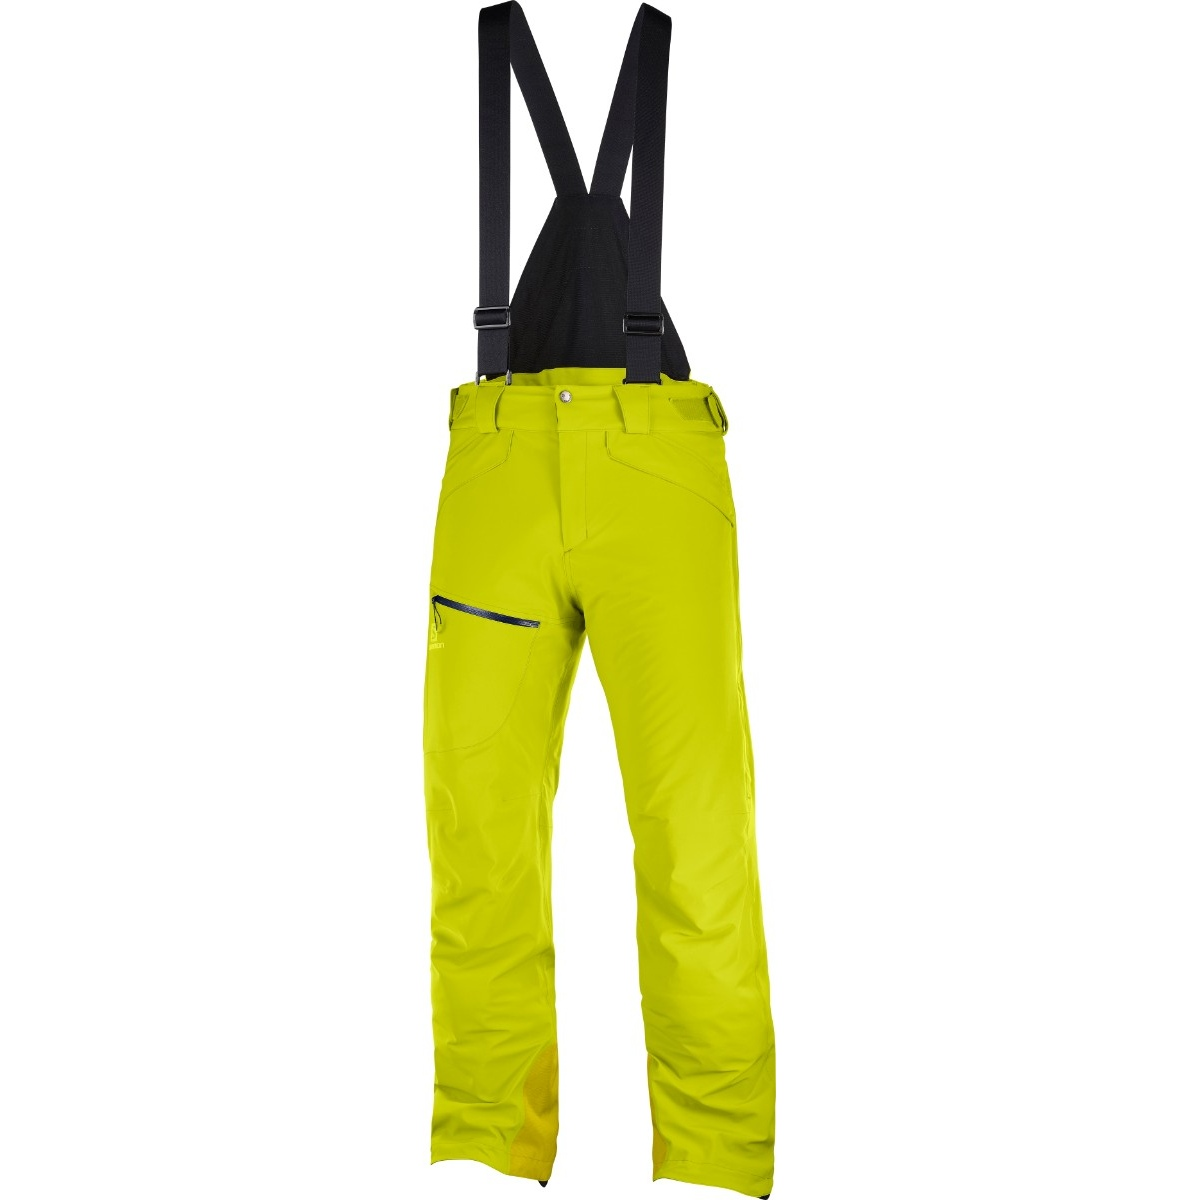 Pantaloni de ski Salomon CHILL OUT BIB - Galben